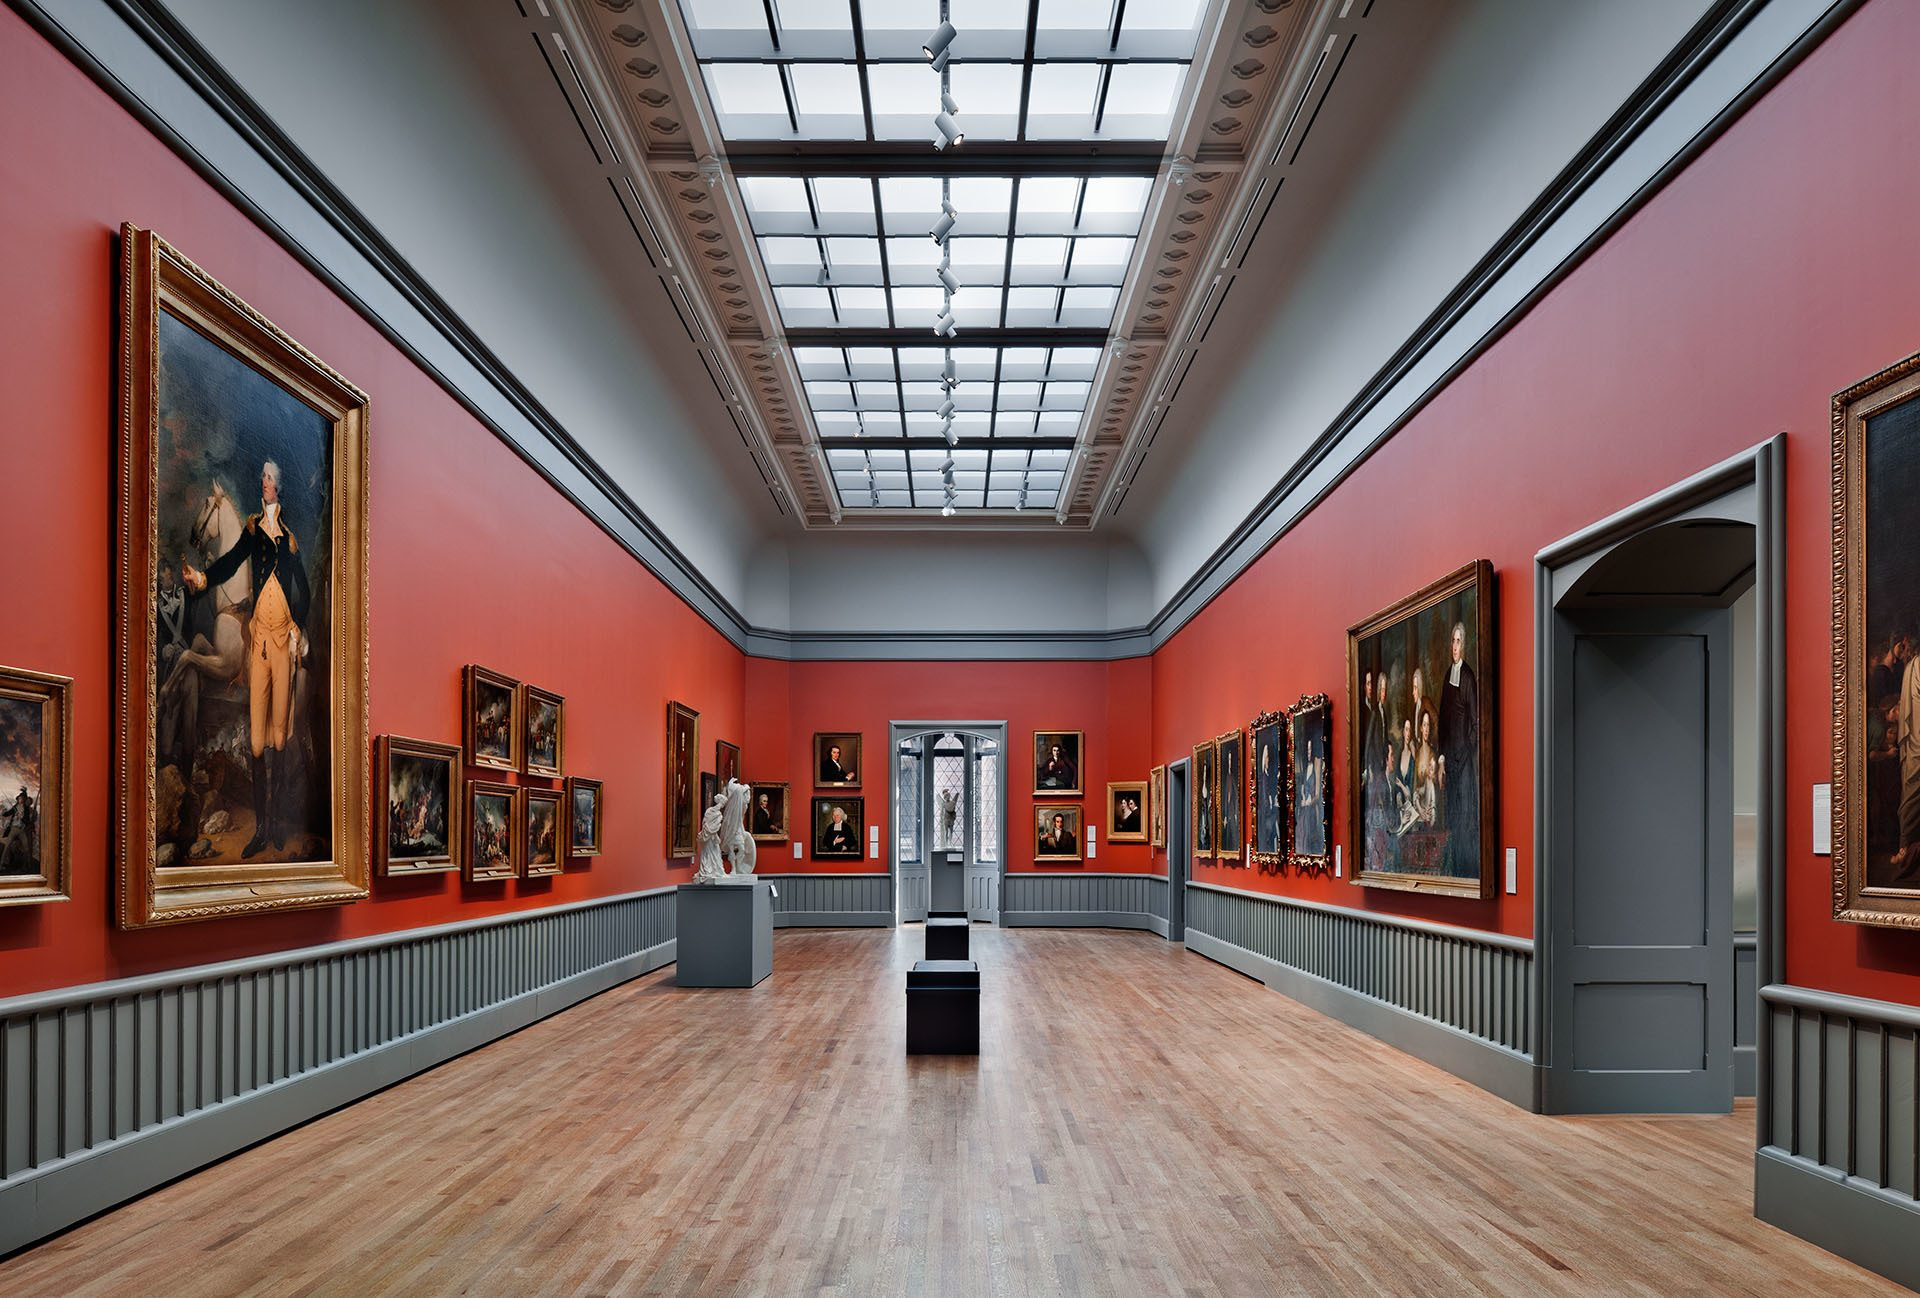 a descriptions of the reasons to visit museums and galleries If your travel style is to museum hop across the globe, then look no further for vacation inspiration this list of the world's best 25 museums is a great place to start.